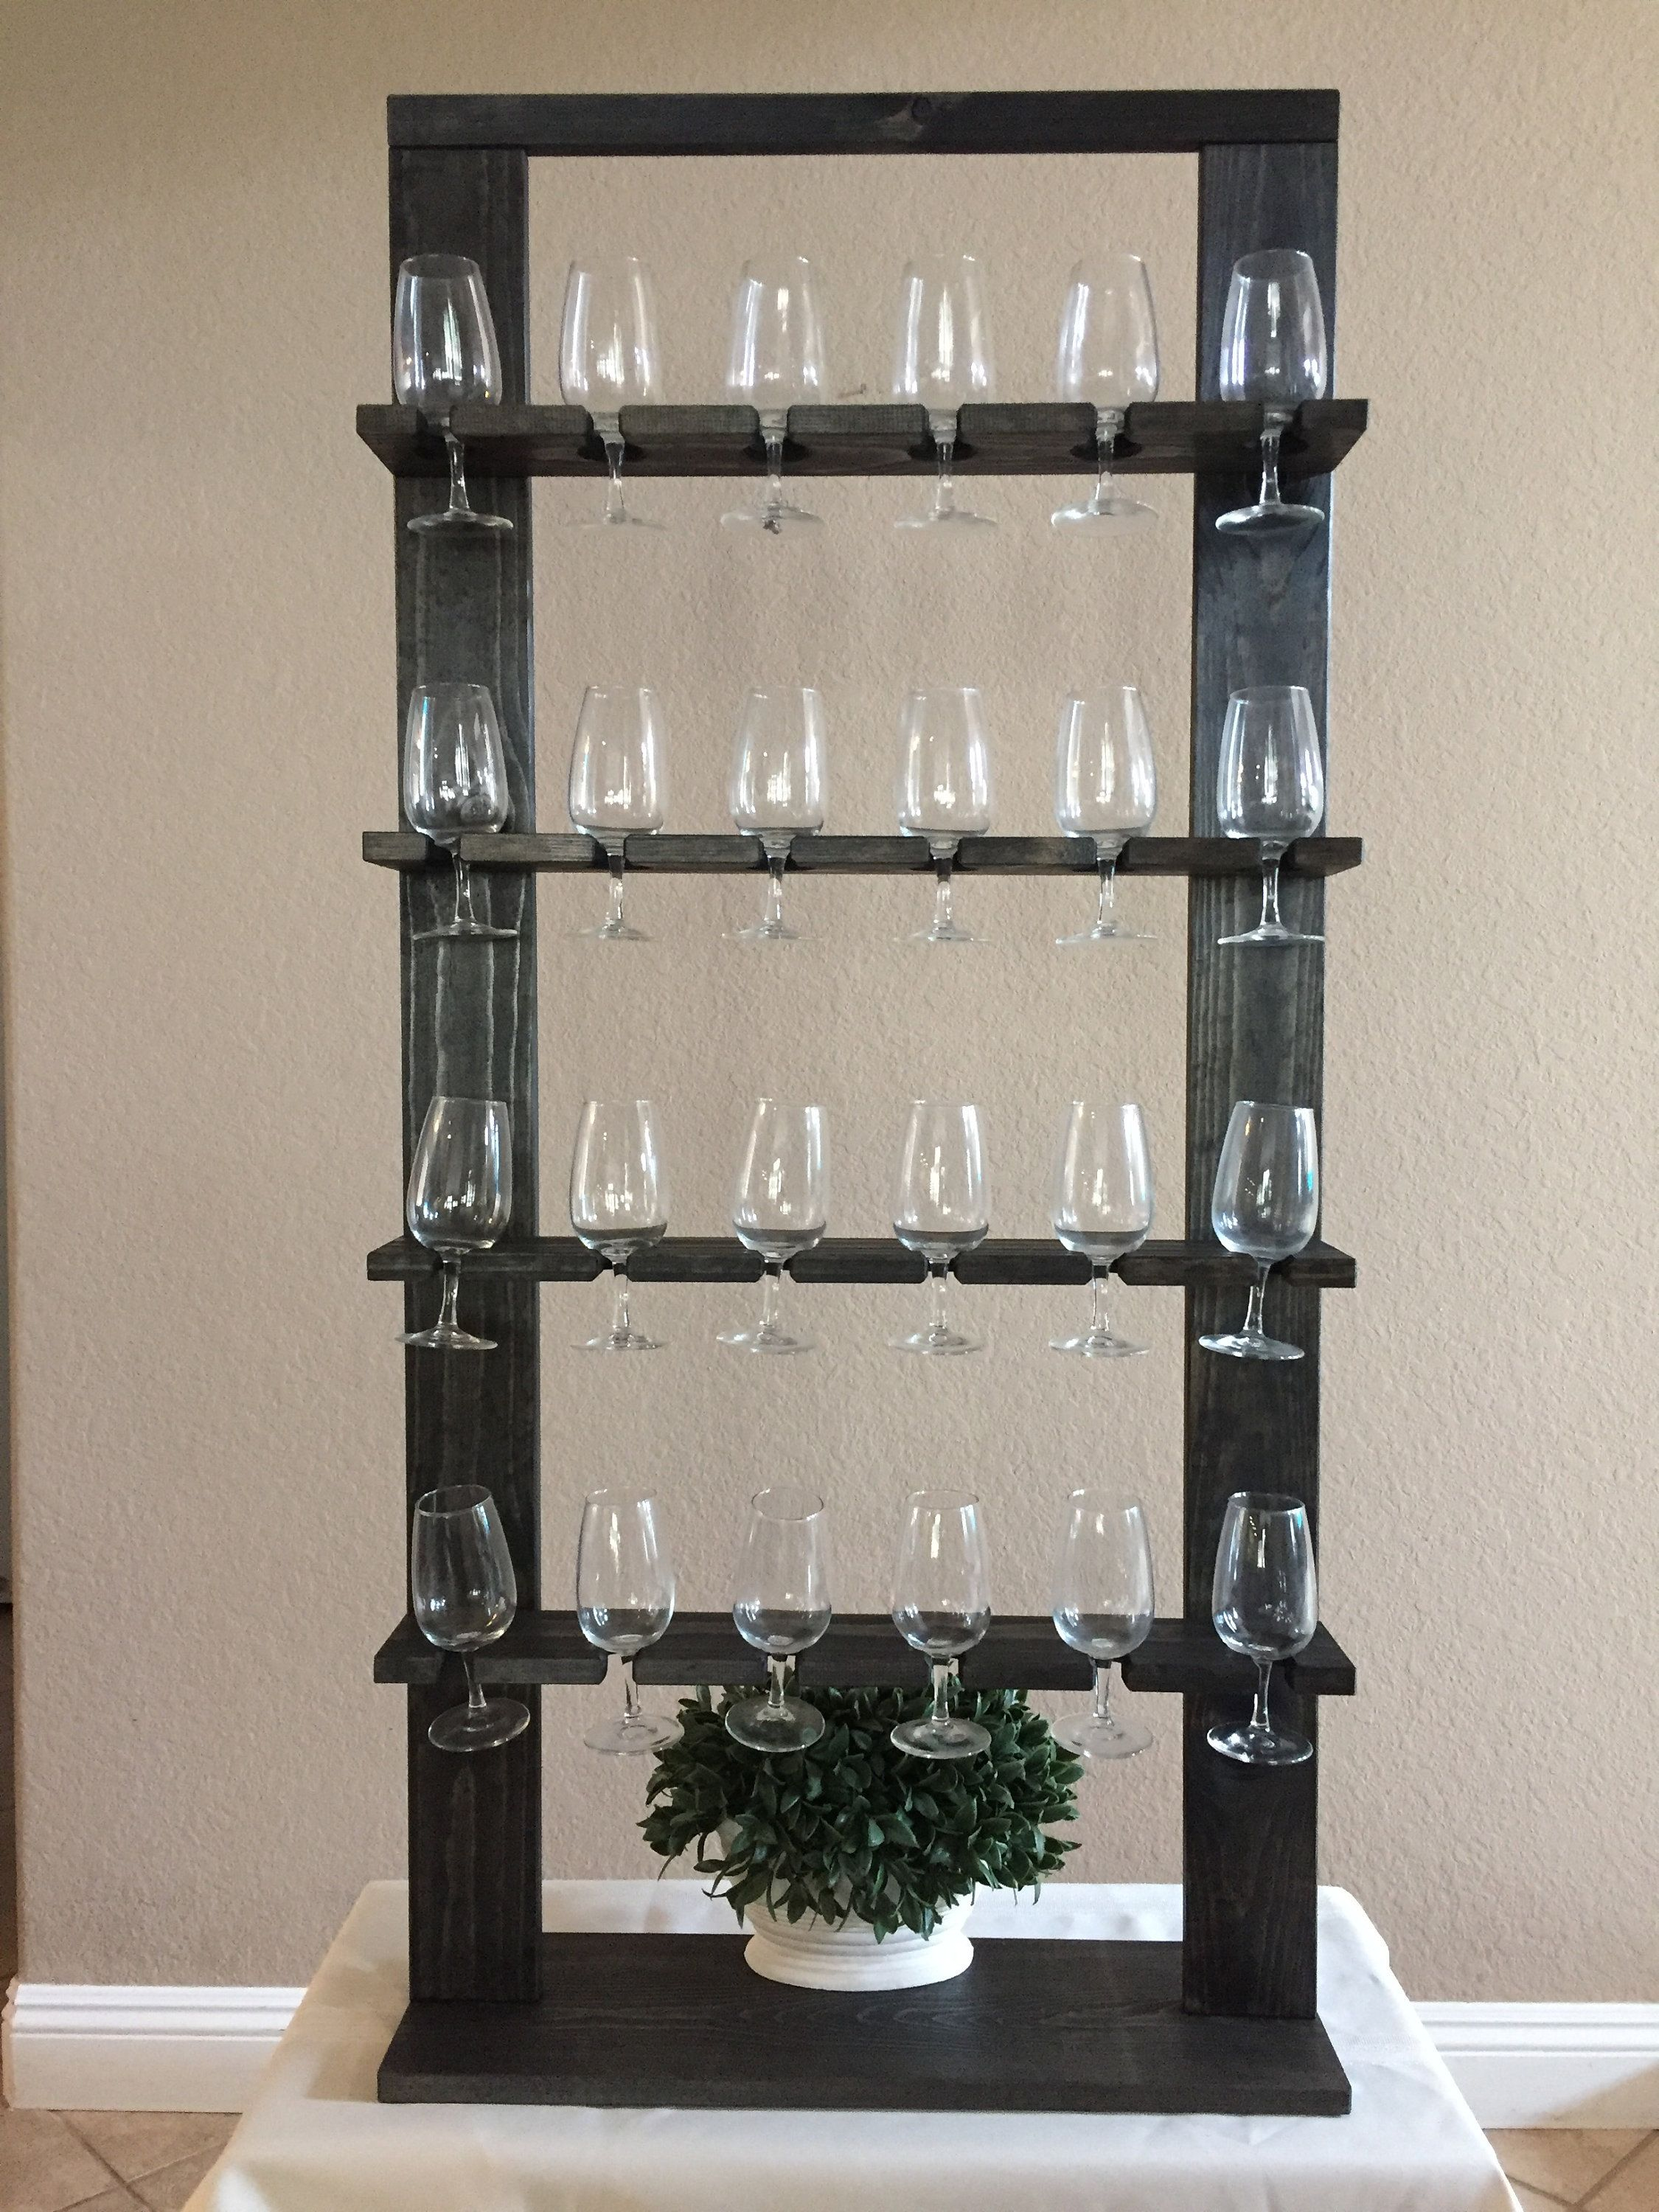 Champagne Wall Prosecco Wall Wine Glass Stand Holder Etsy Wine Glass Display Wine Wall Stemware